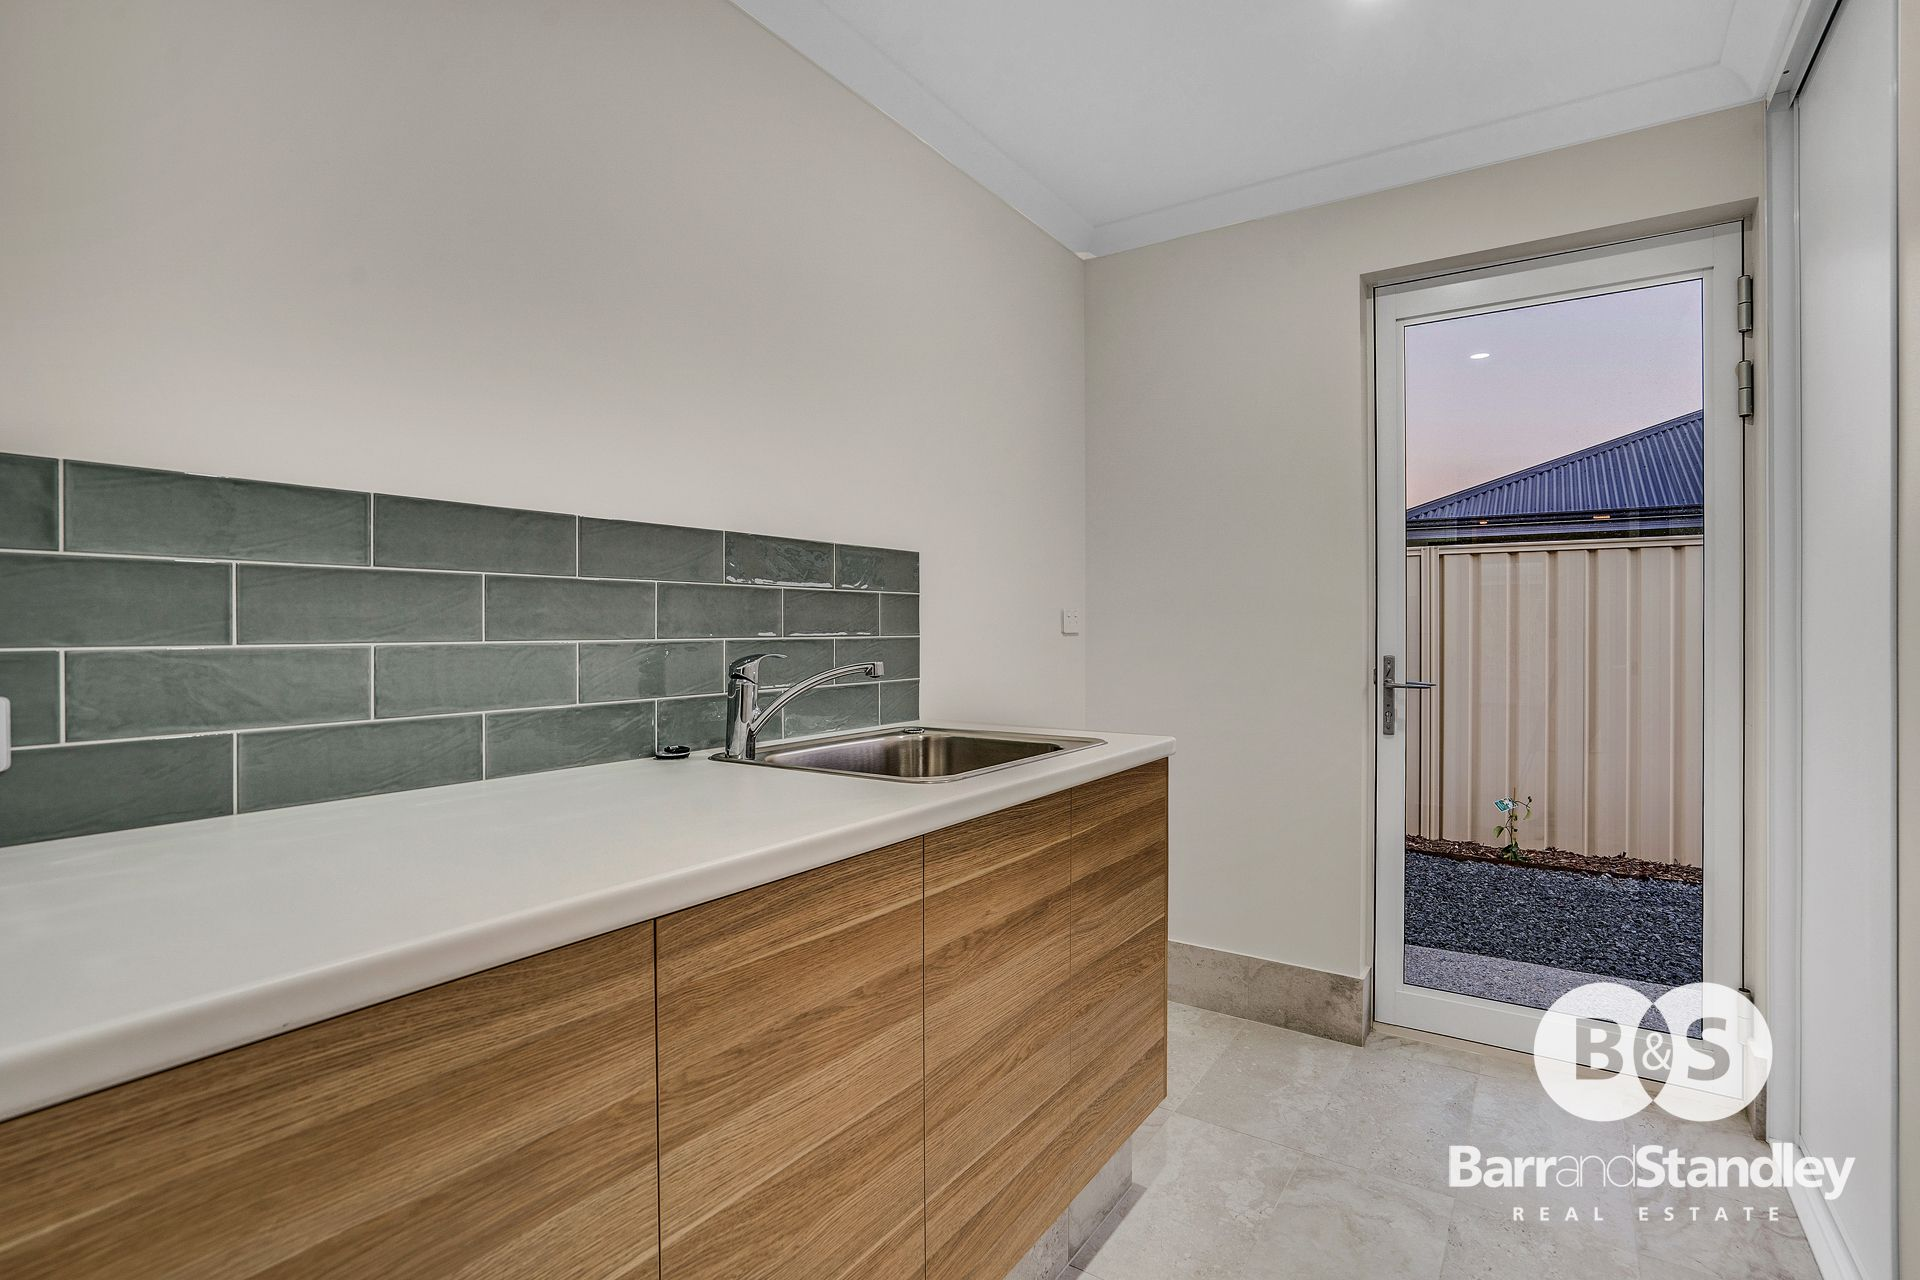 10 Budart Way, West Busselton